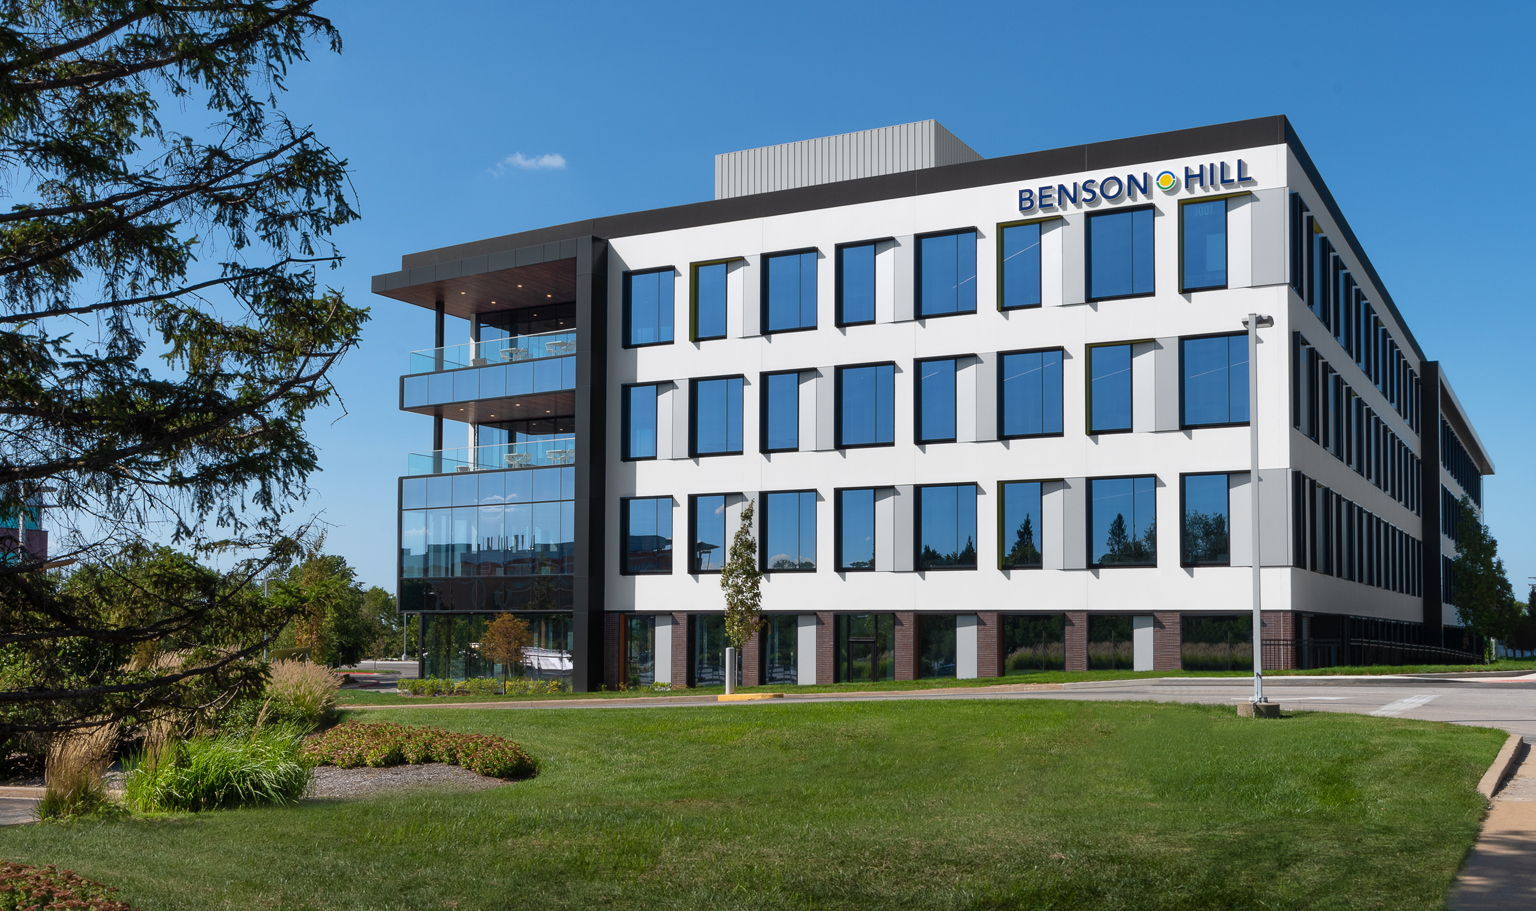 Benson Hill, one of the fastest-growing food tech companies in the country, houses a diverse & growing team with expertise in plant biology, agronomy, data analytics, machine learning and food science all focused on moving food forward.